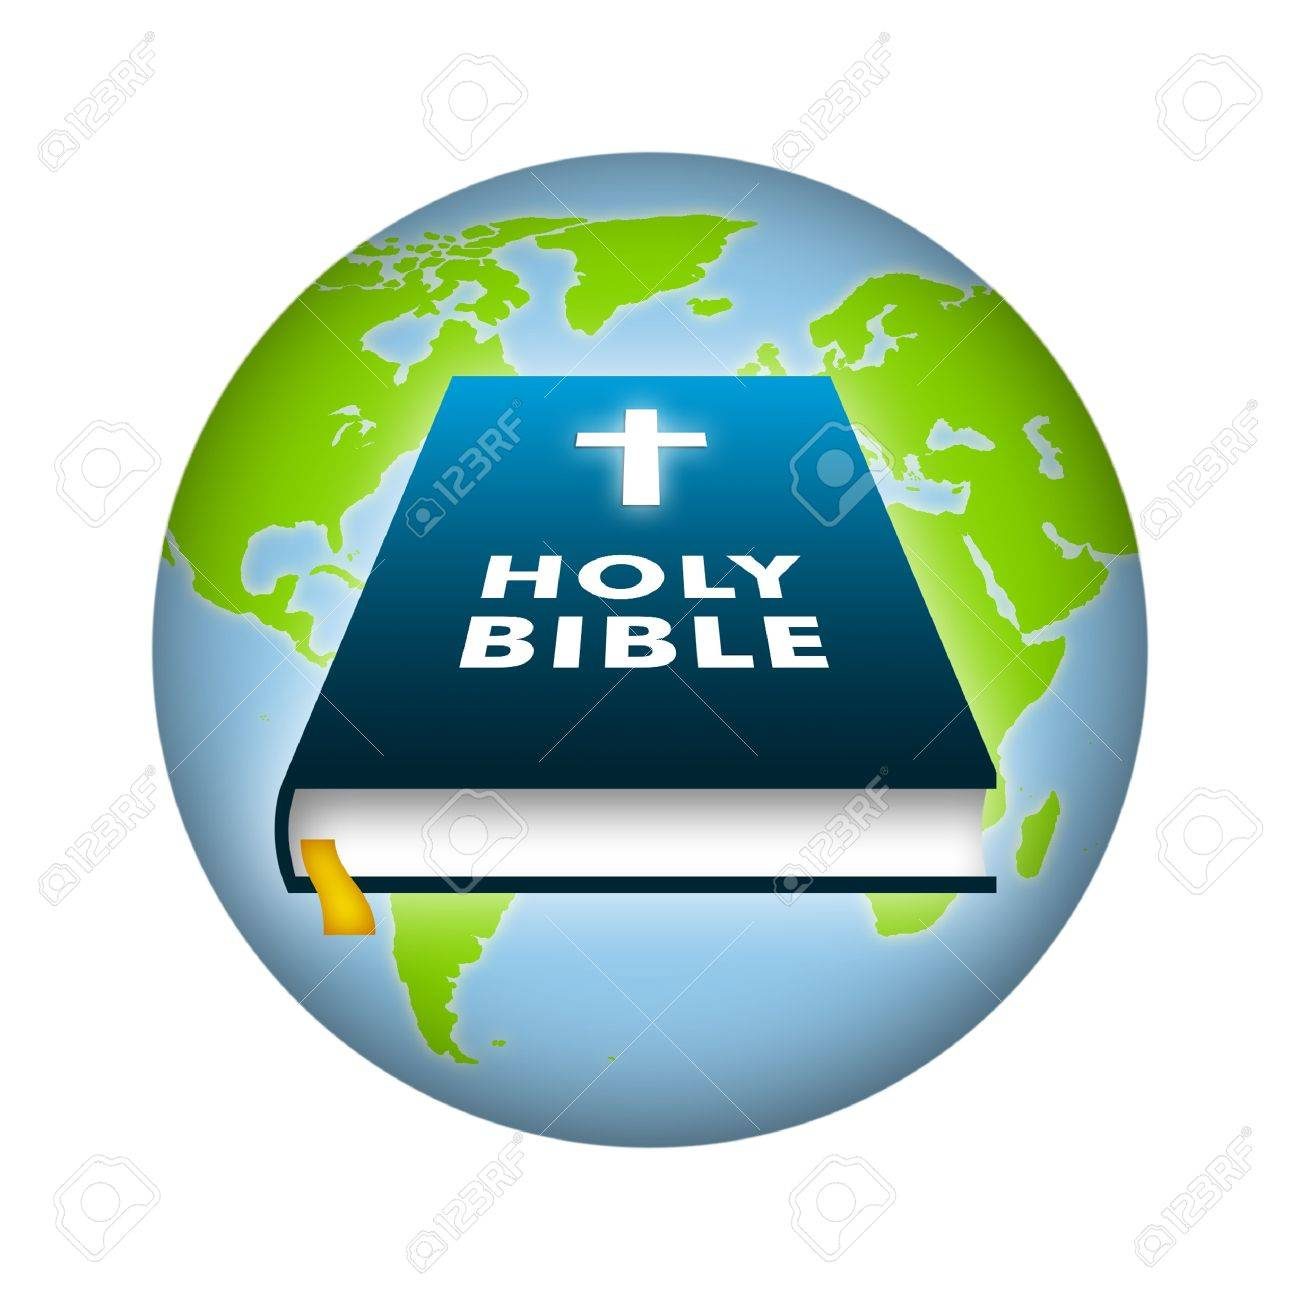 Bible illustration with earth background. - 8677249